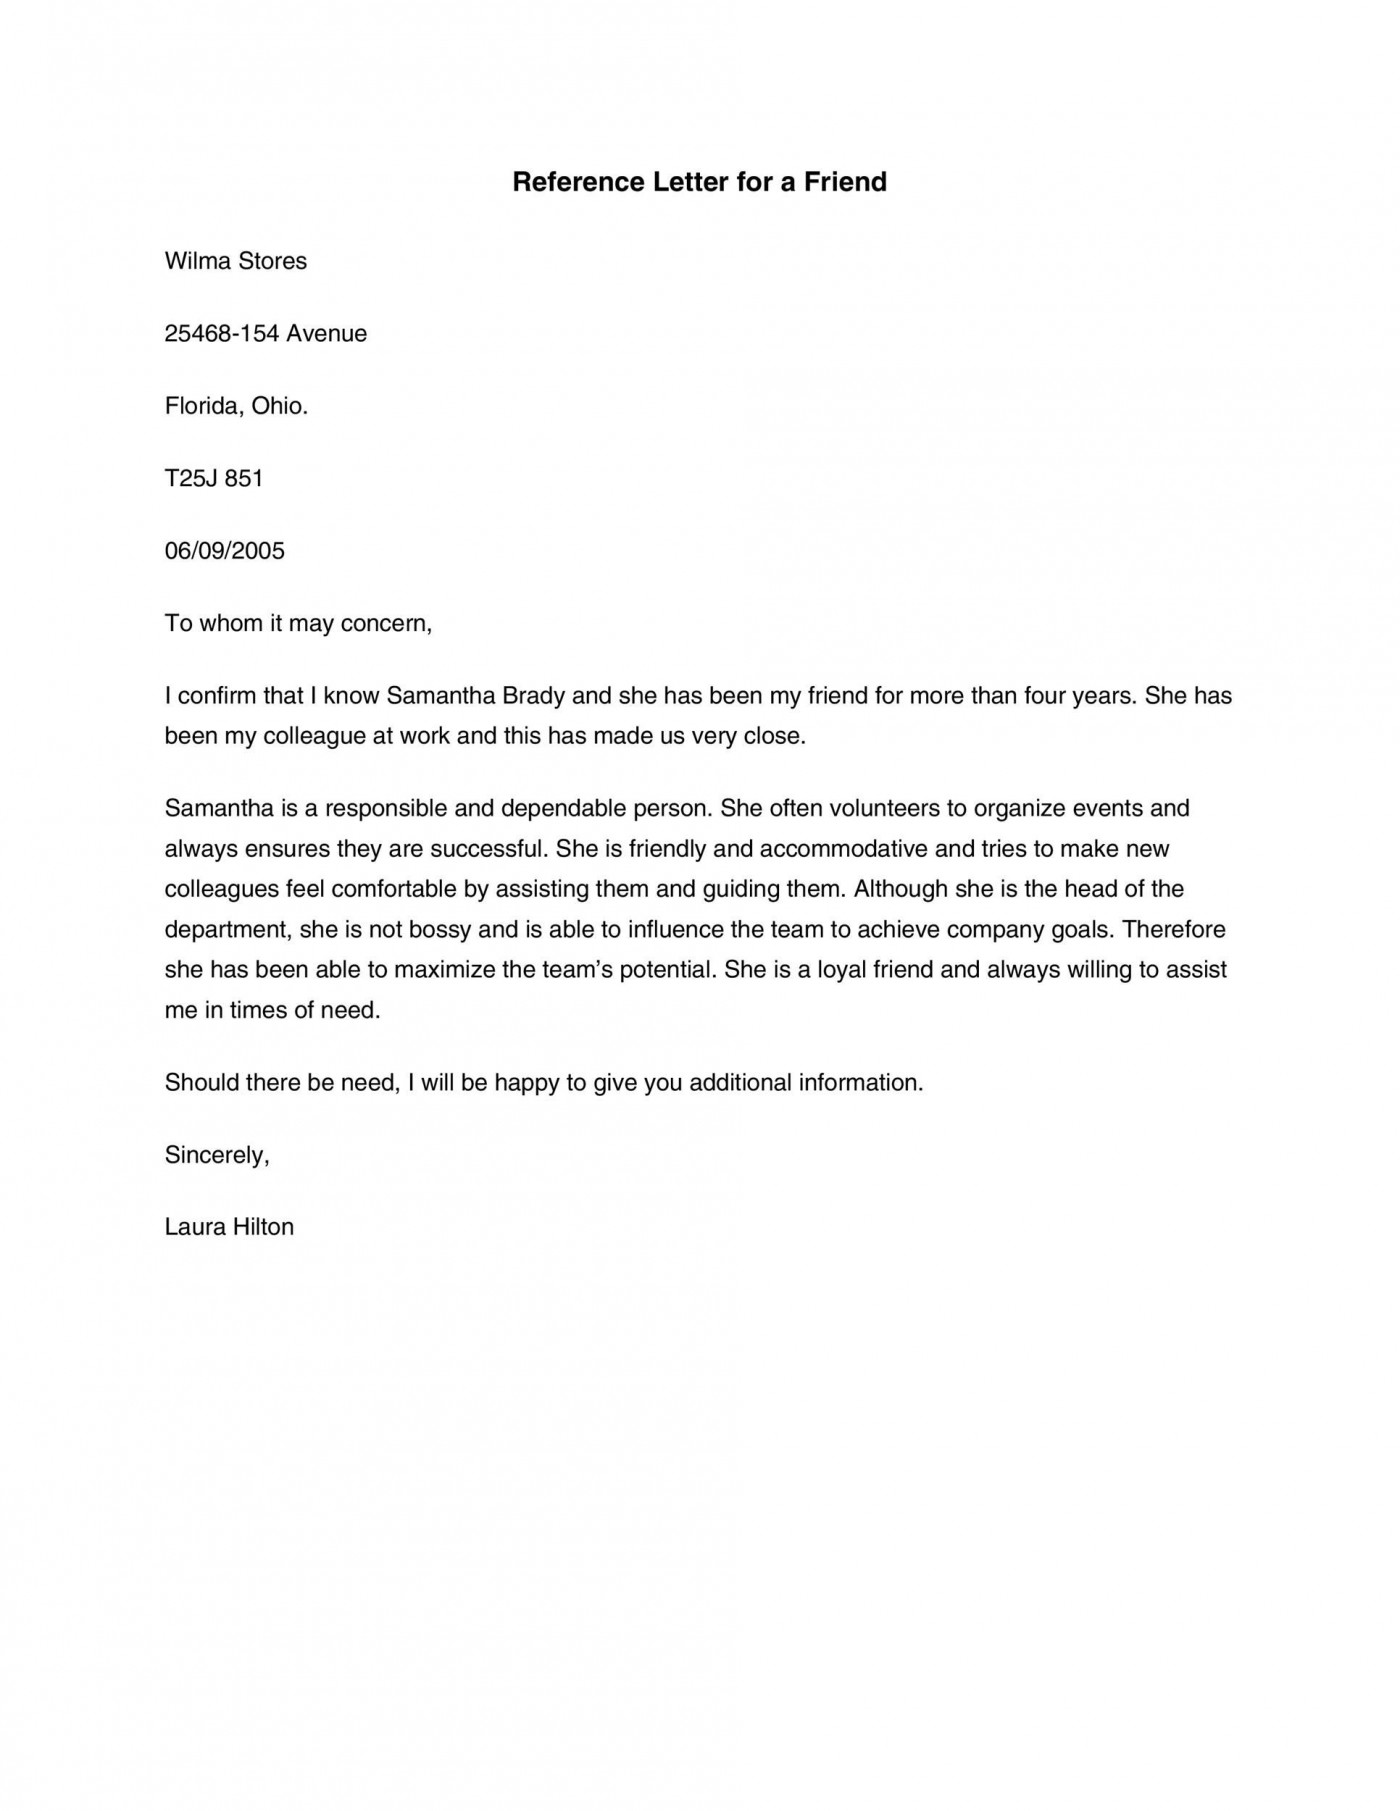 007 Astounding Free Reference Letter Template For Friend Example 1400